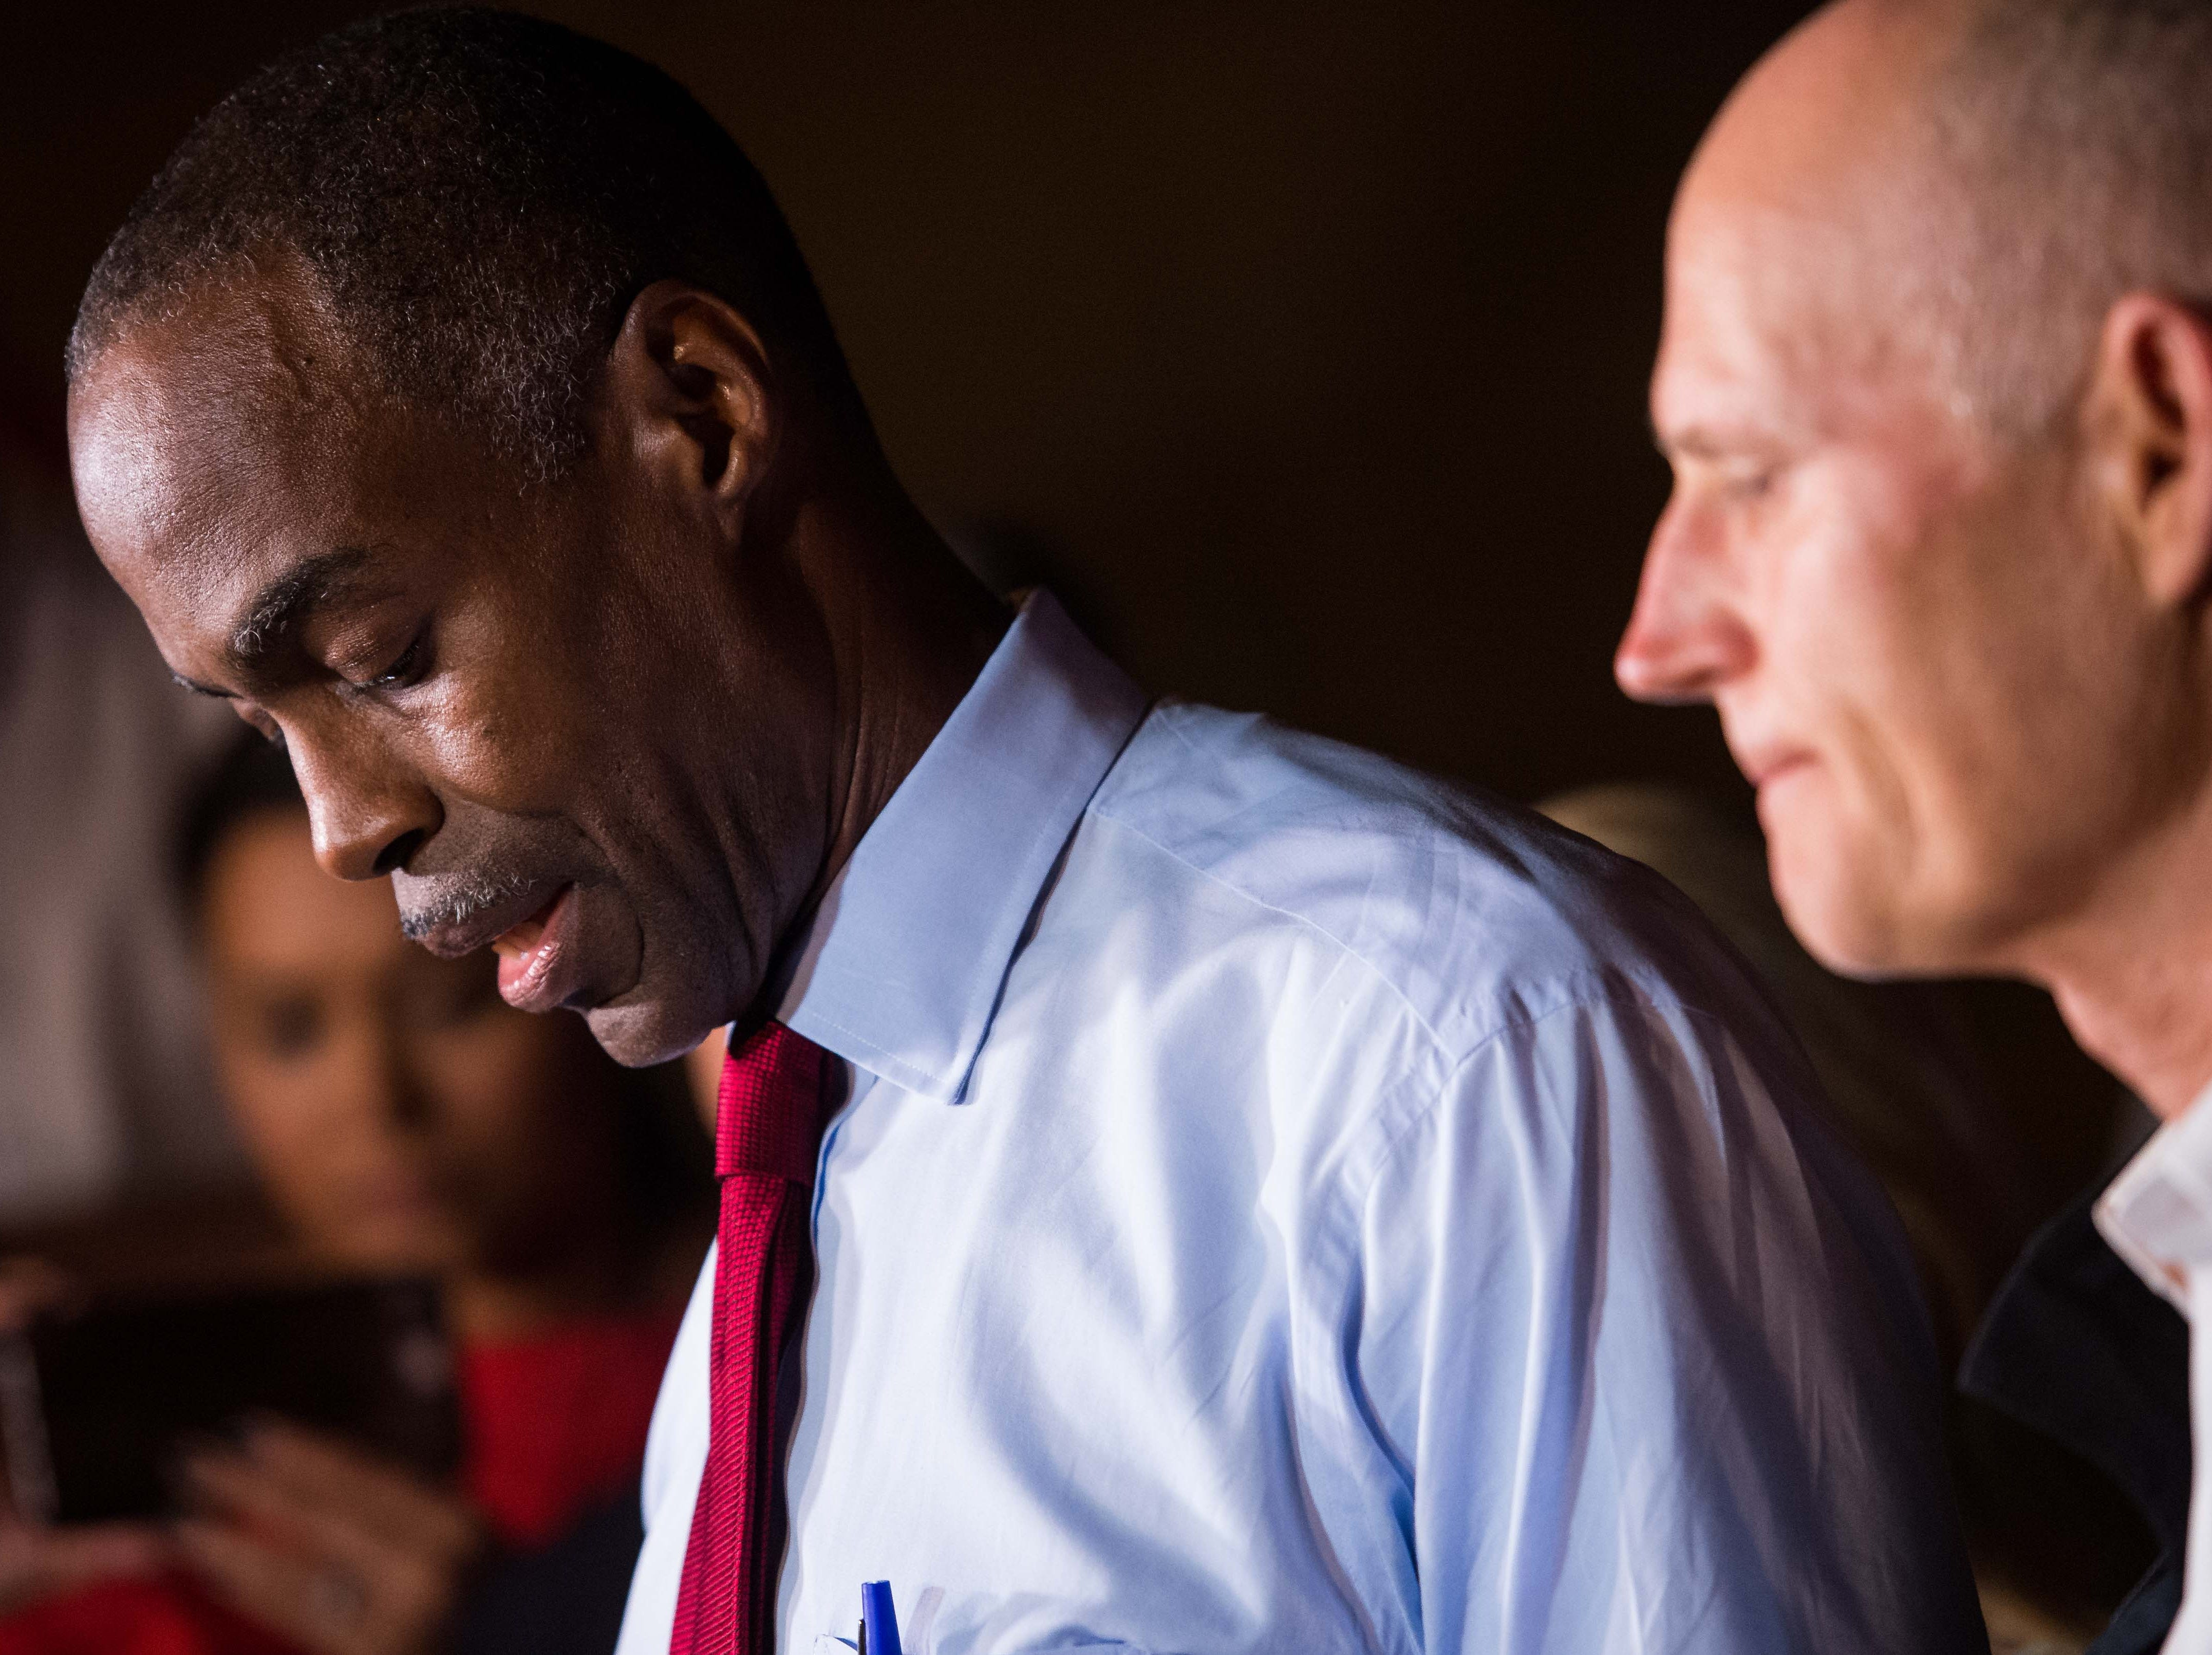 Broward County School Superintendent Robert Runcie speaks at a news conference, followed by Gov. Rick Scott (right), near Marjory Stoneman Douglas High School in Parkland on Wednesday, Feb. 14, 2018.